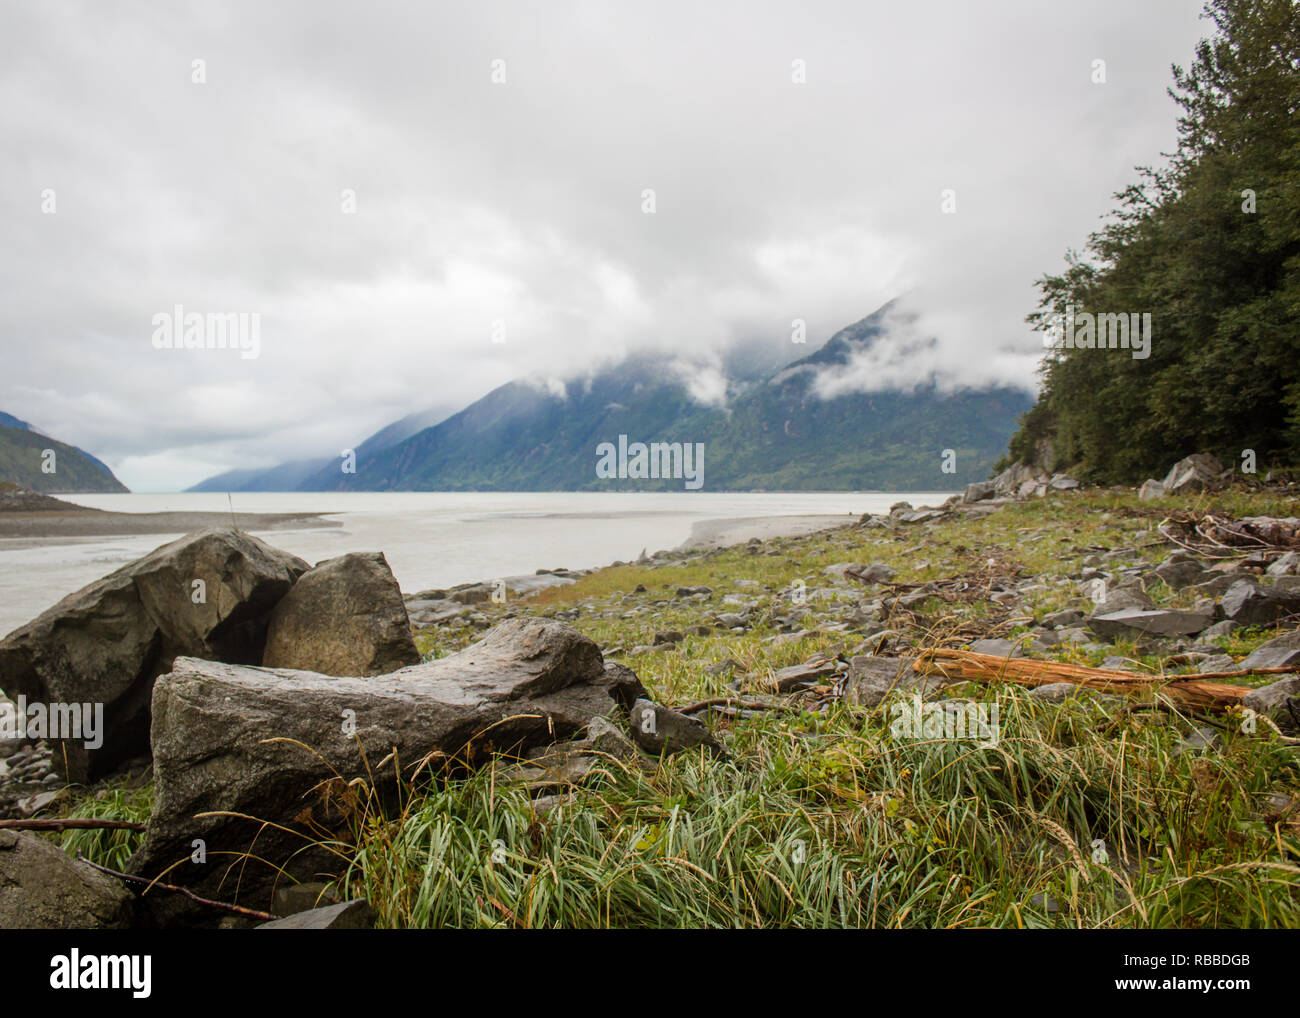 Looking out from Skagway - Stock Image